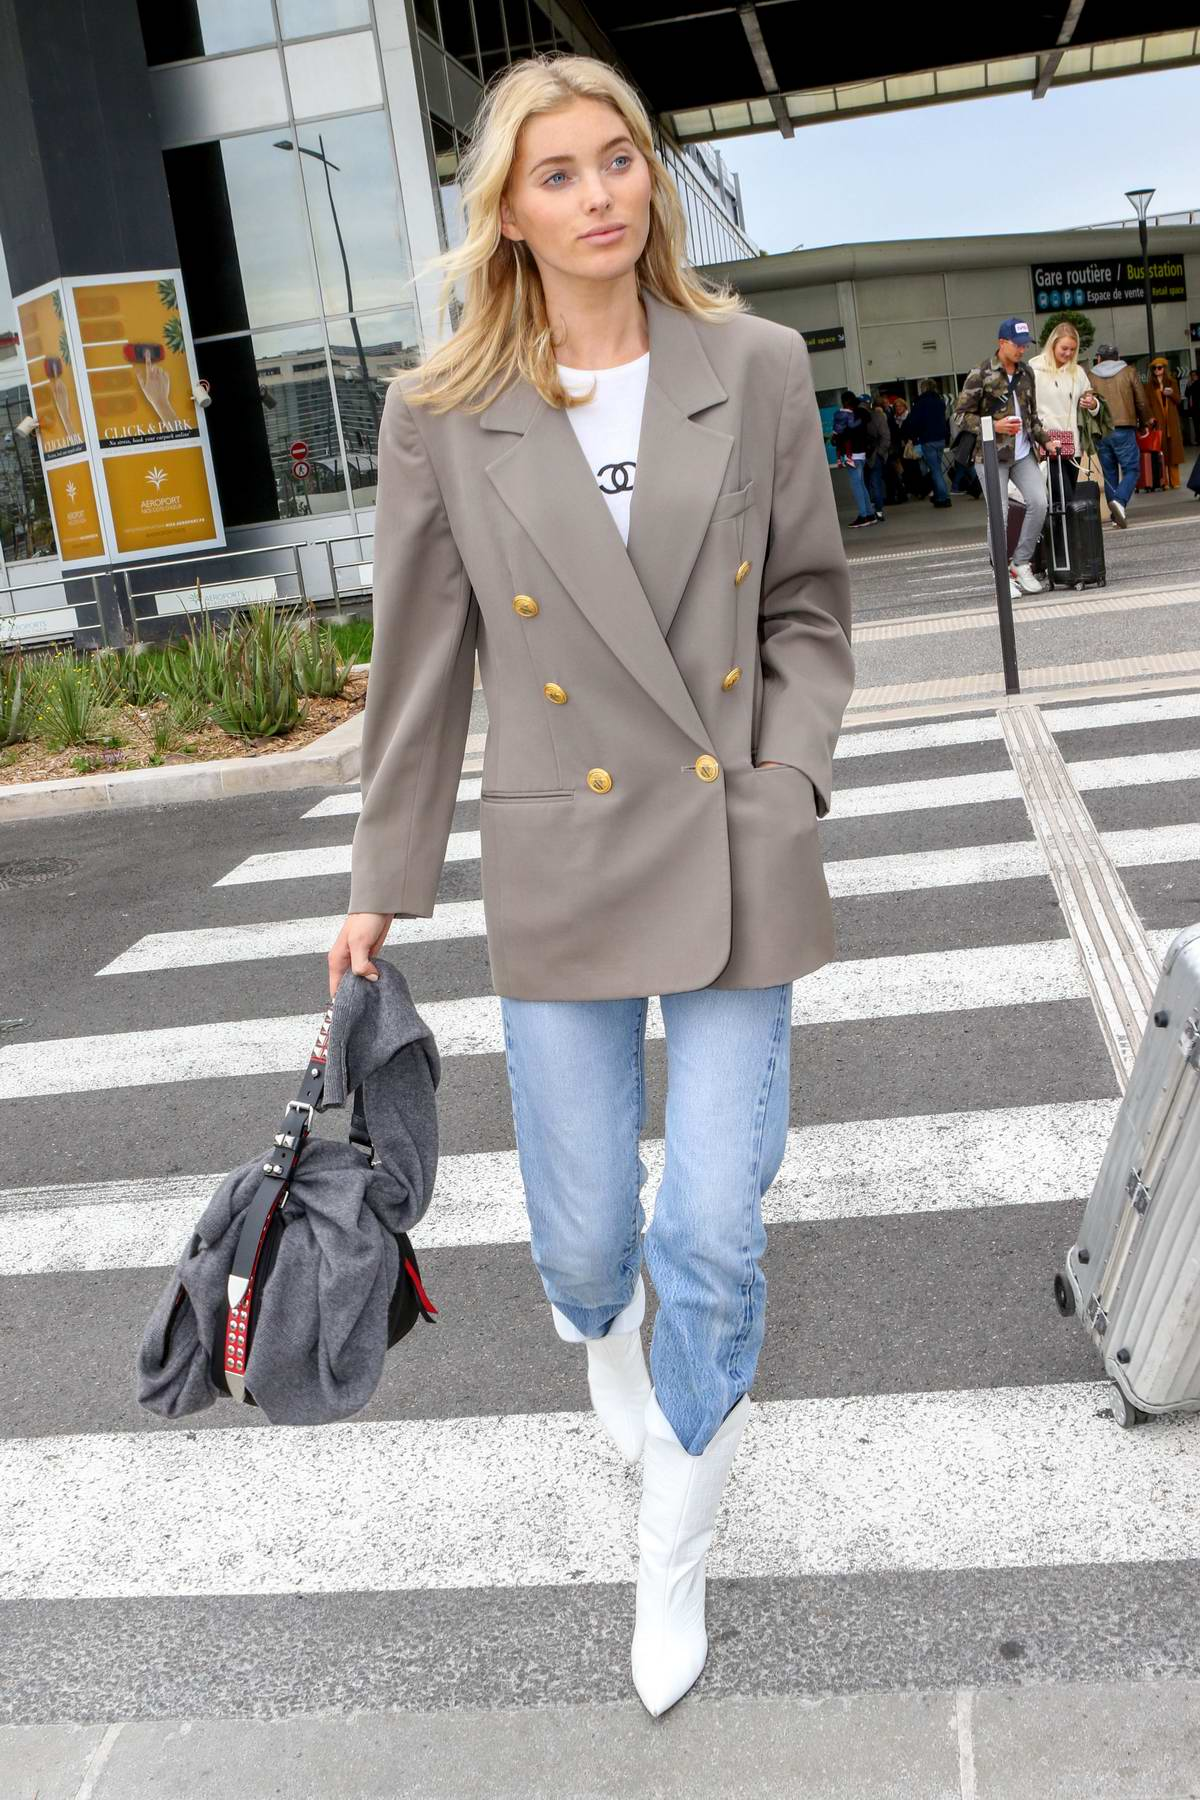 Elsa Hosk keeps it stylish as she touches down at Nice Airport for the 72nd annual Cannes Film Festival, France